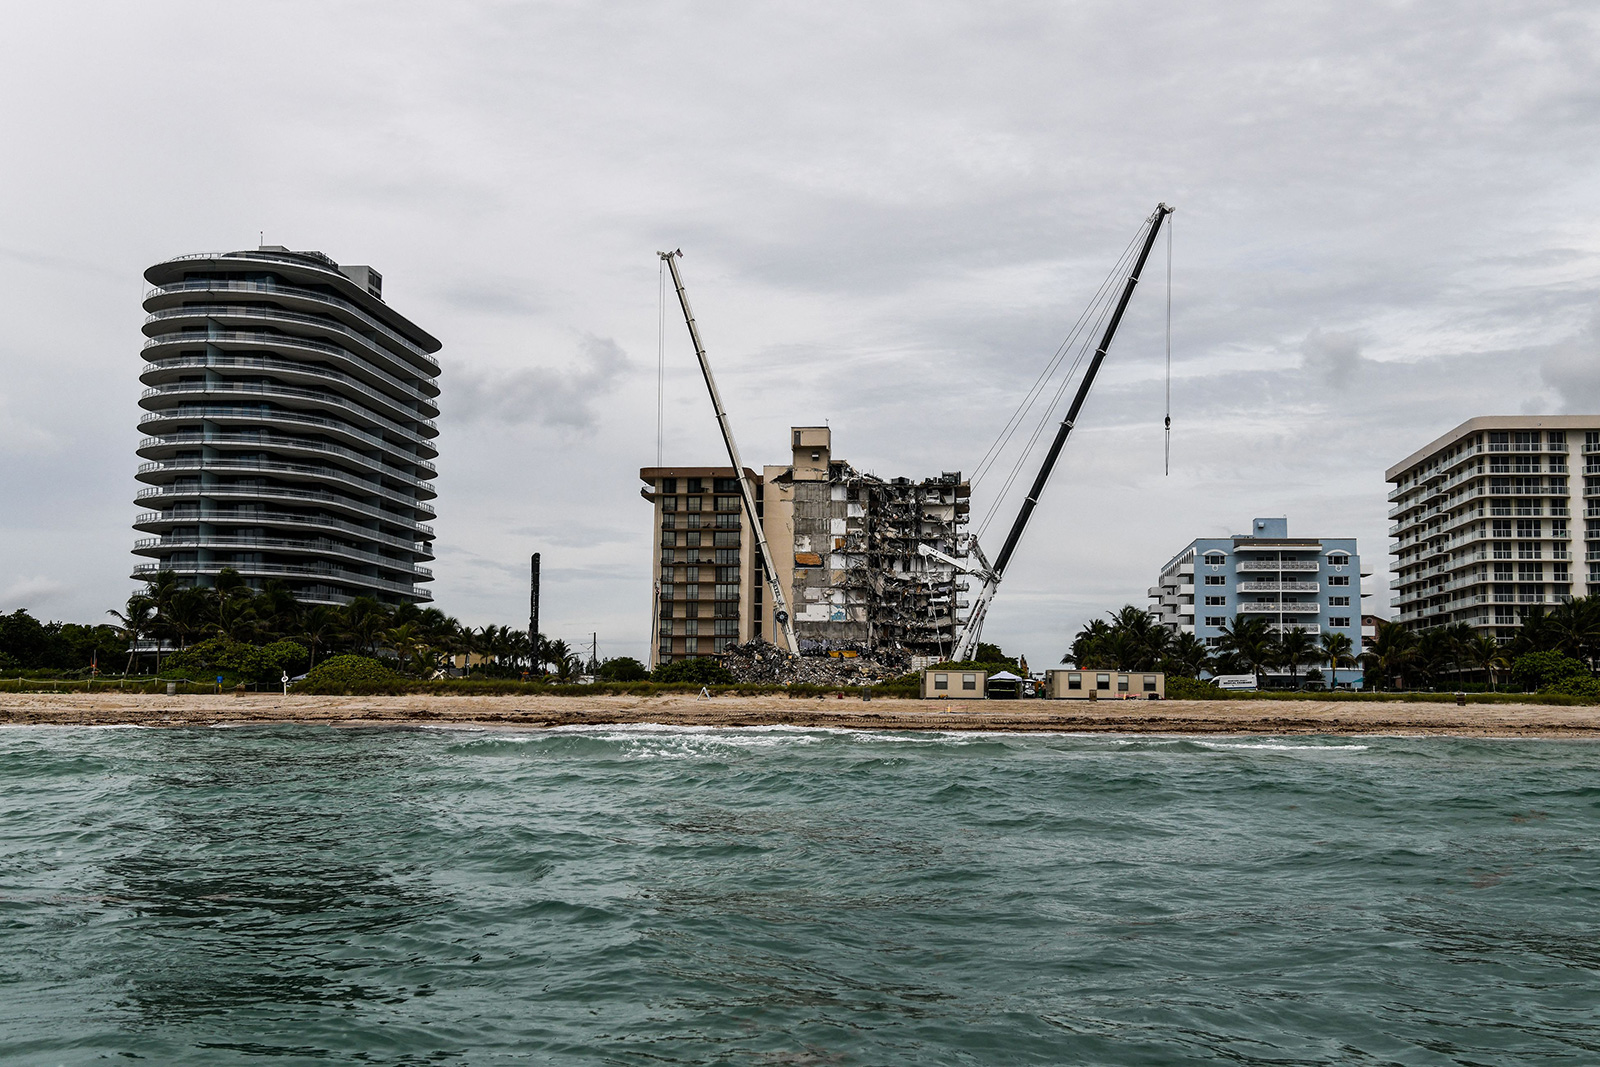 Search and Rescue teams look for possible survivors in the partially collapsed 12-story Champlain Towers South condo building on June 29, in Surfside, Florida.